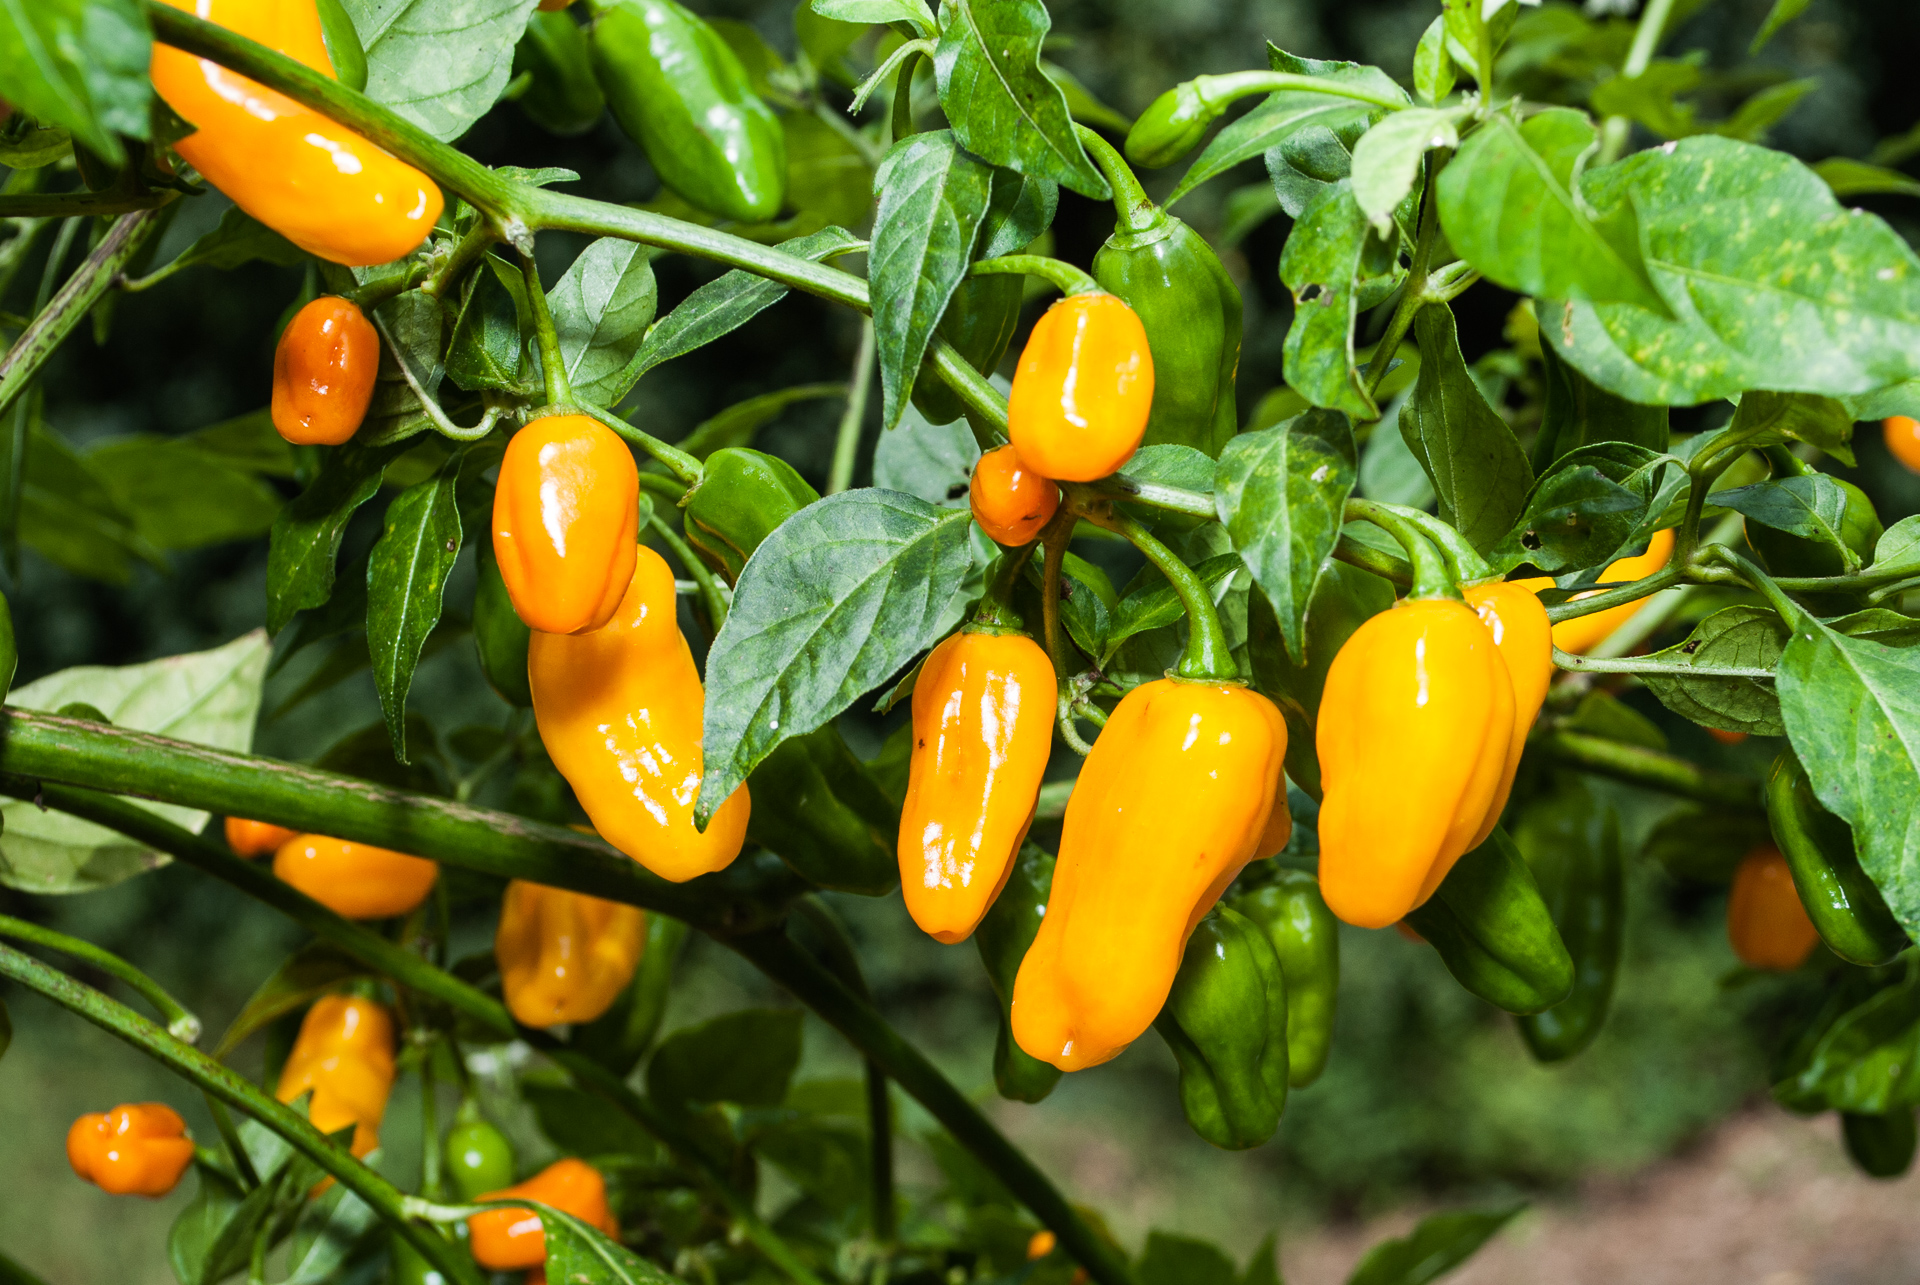 CAP 1360 - Capsicum chinense - Chilisorte